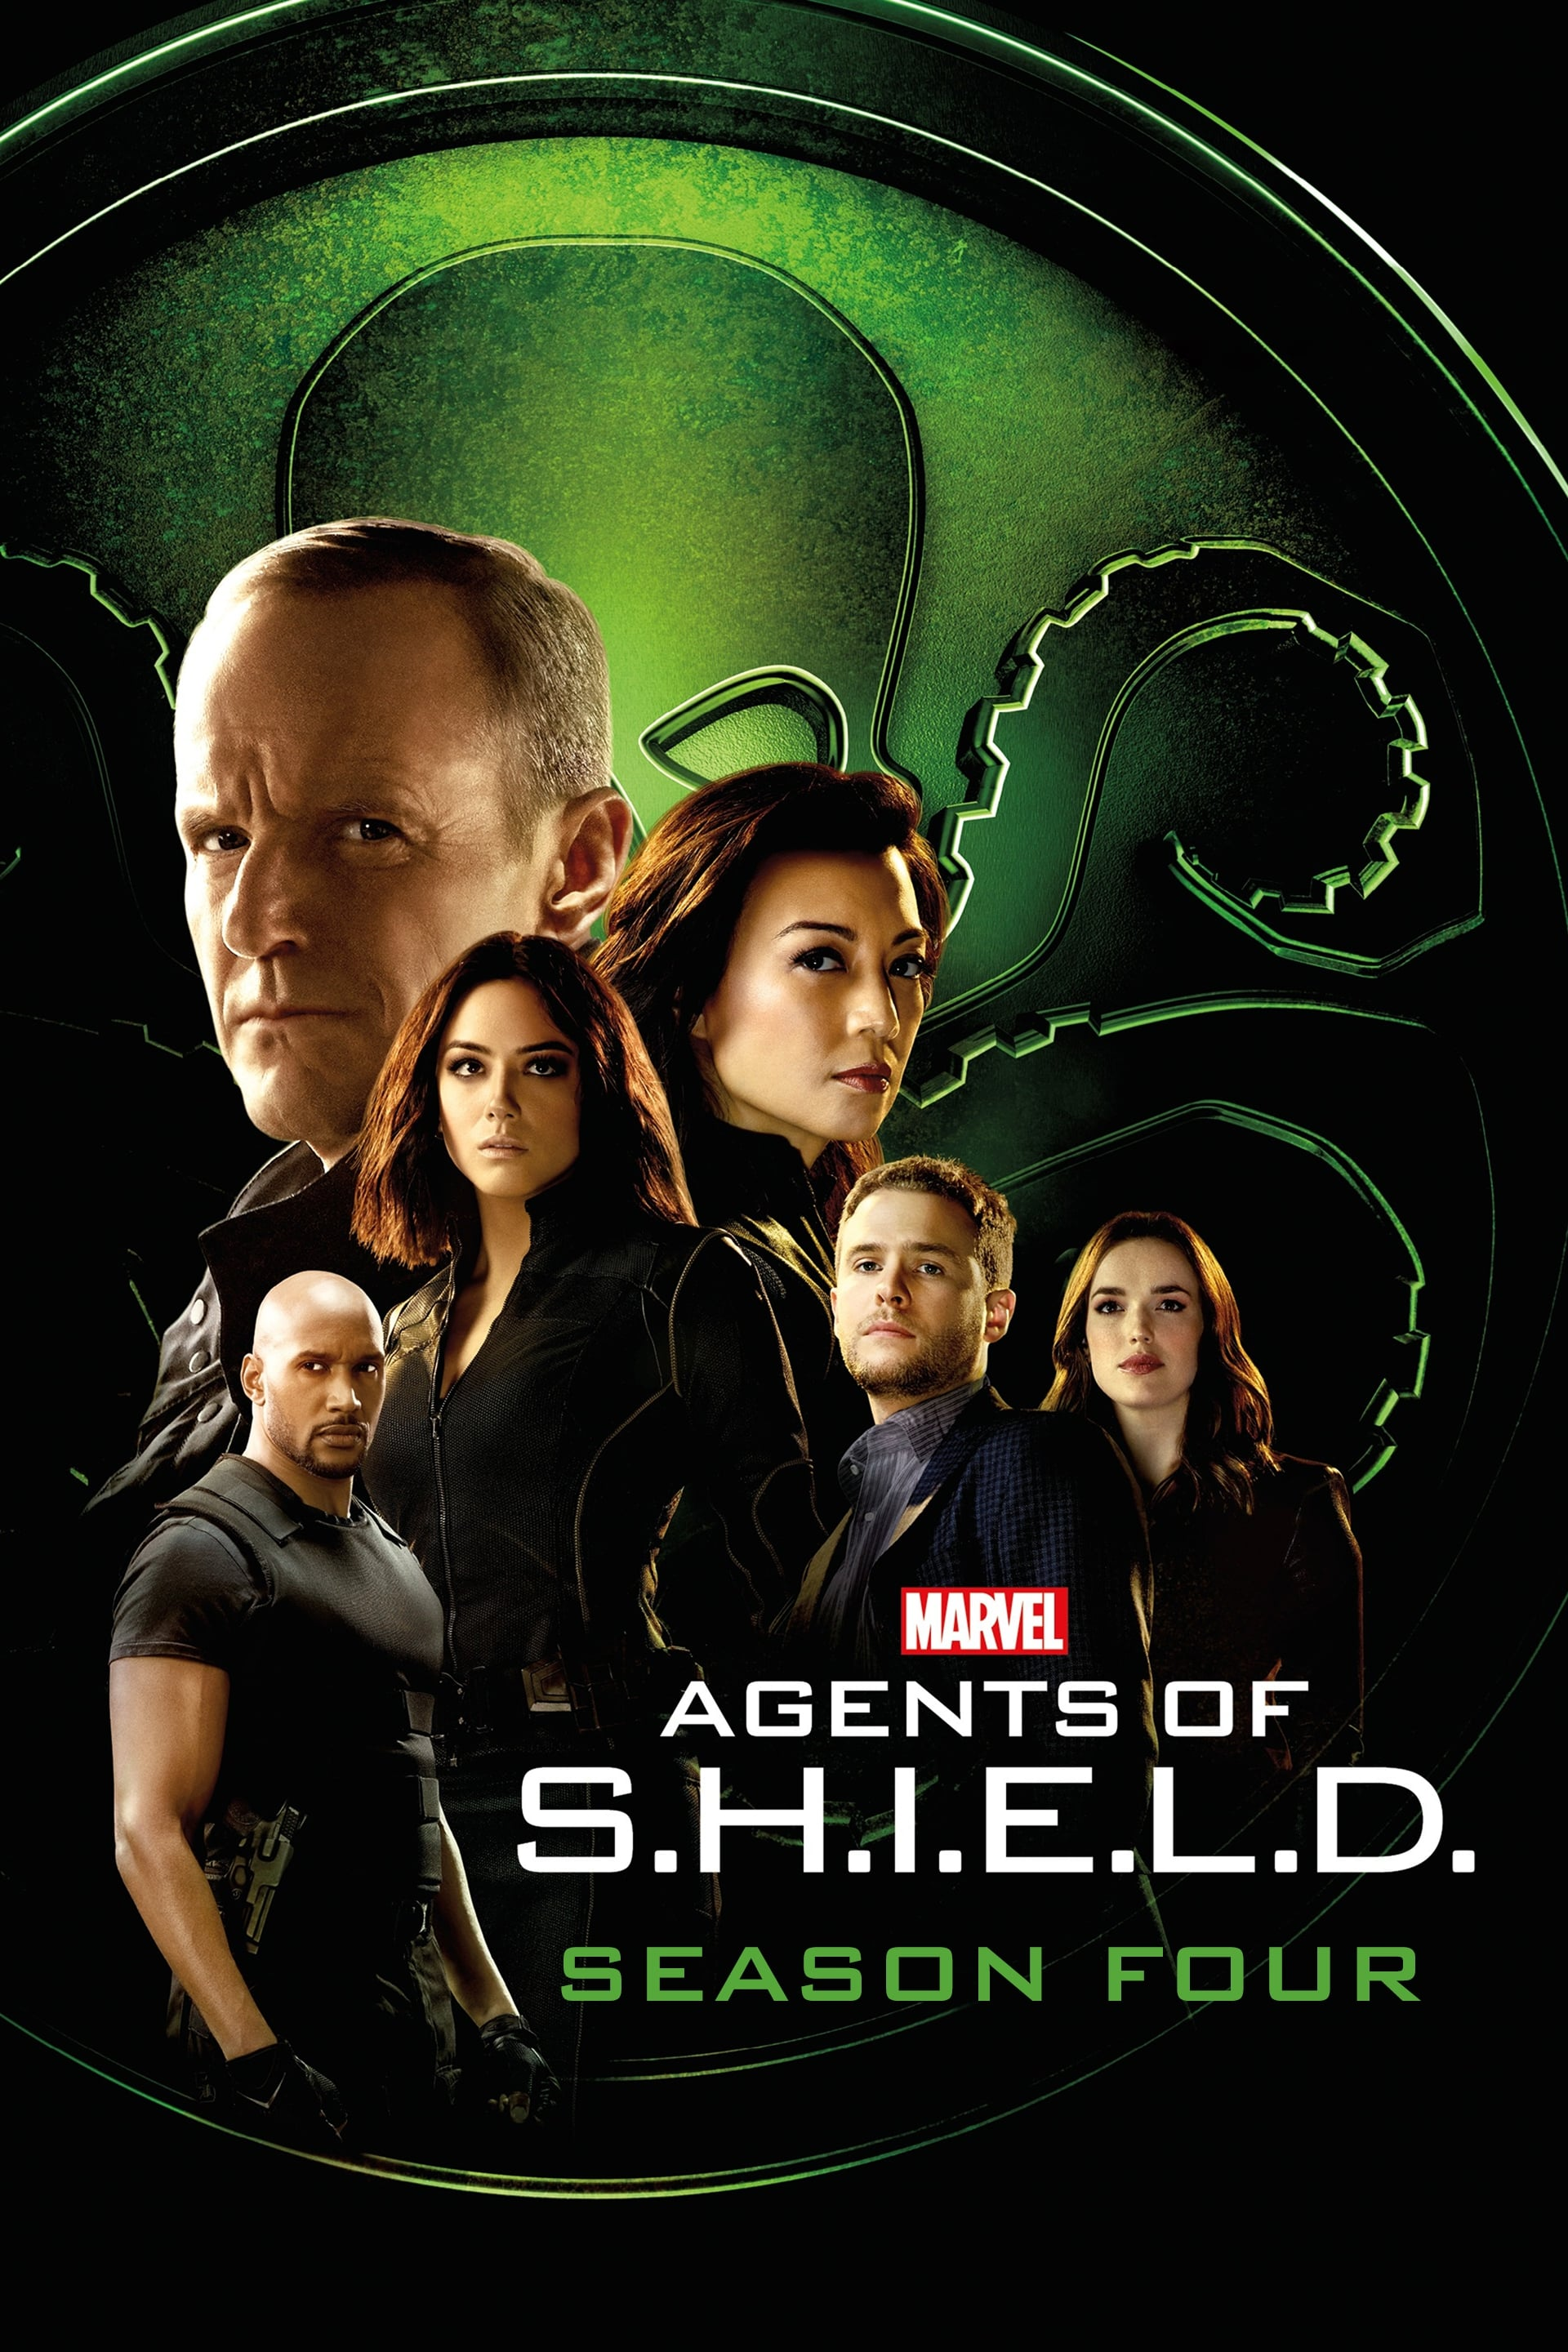 Marvel's Agents of S.H.I.E.L.D. Season 4